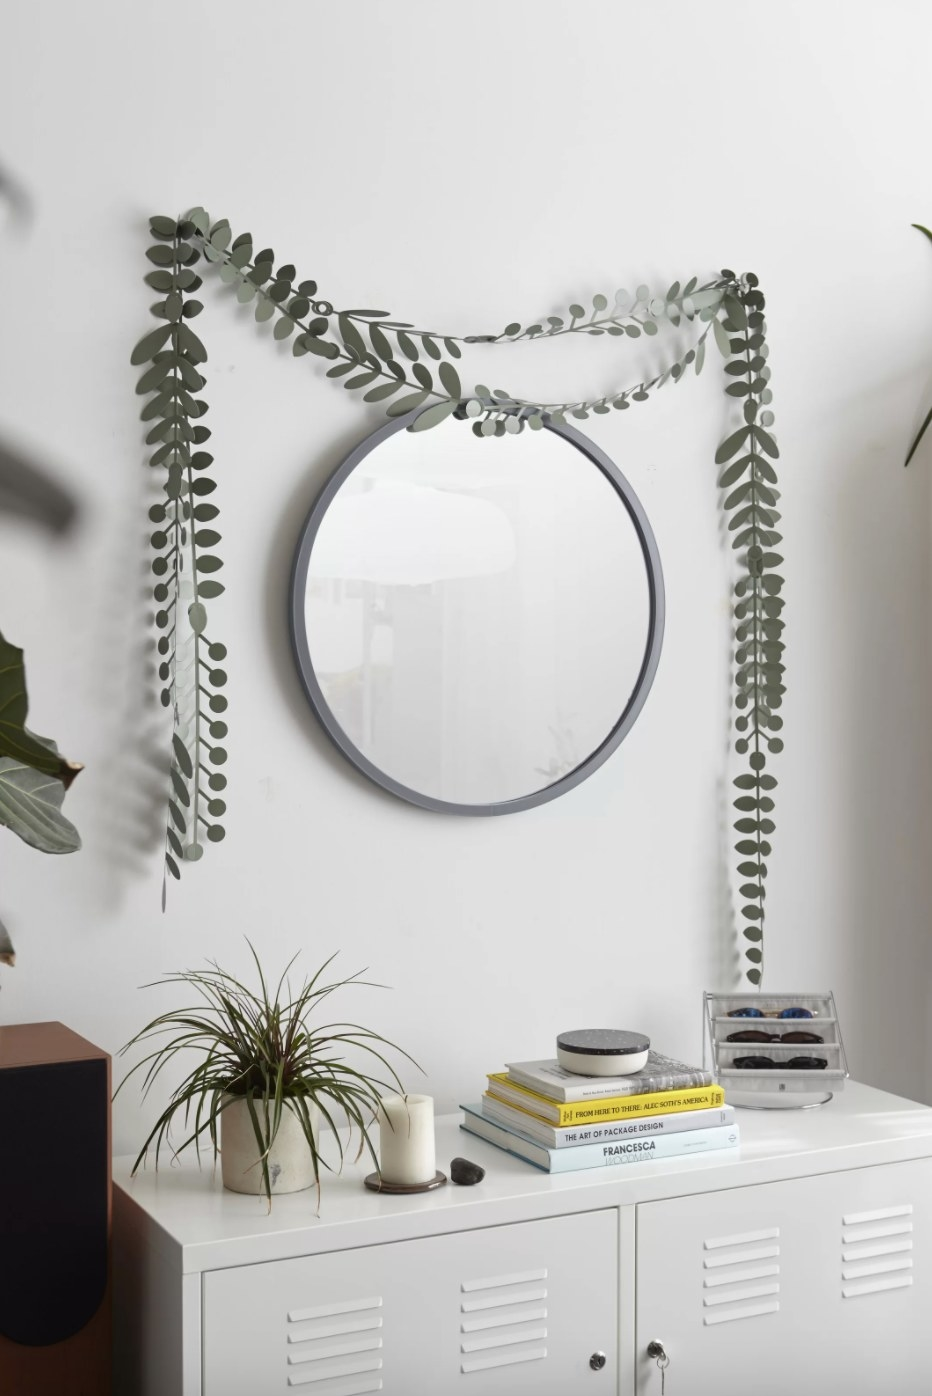 The contemporary mirror in round gray over a dresser